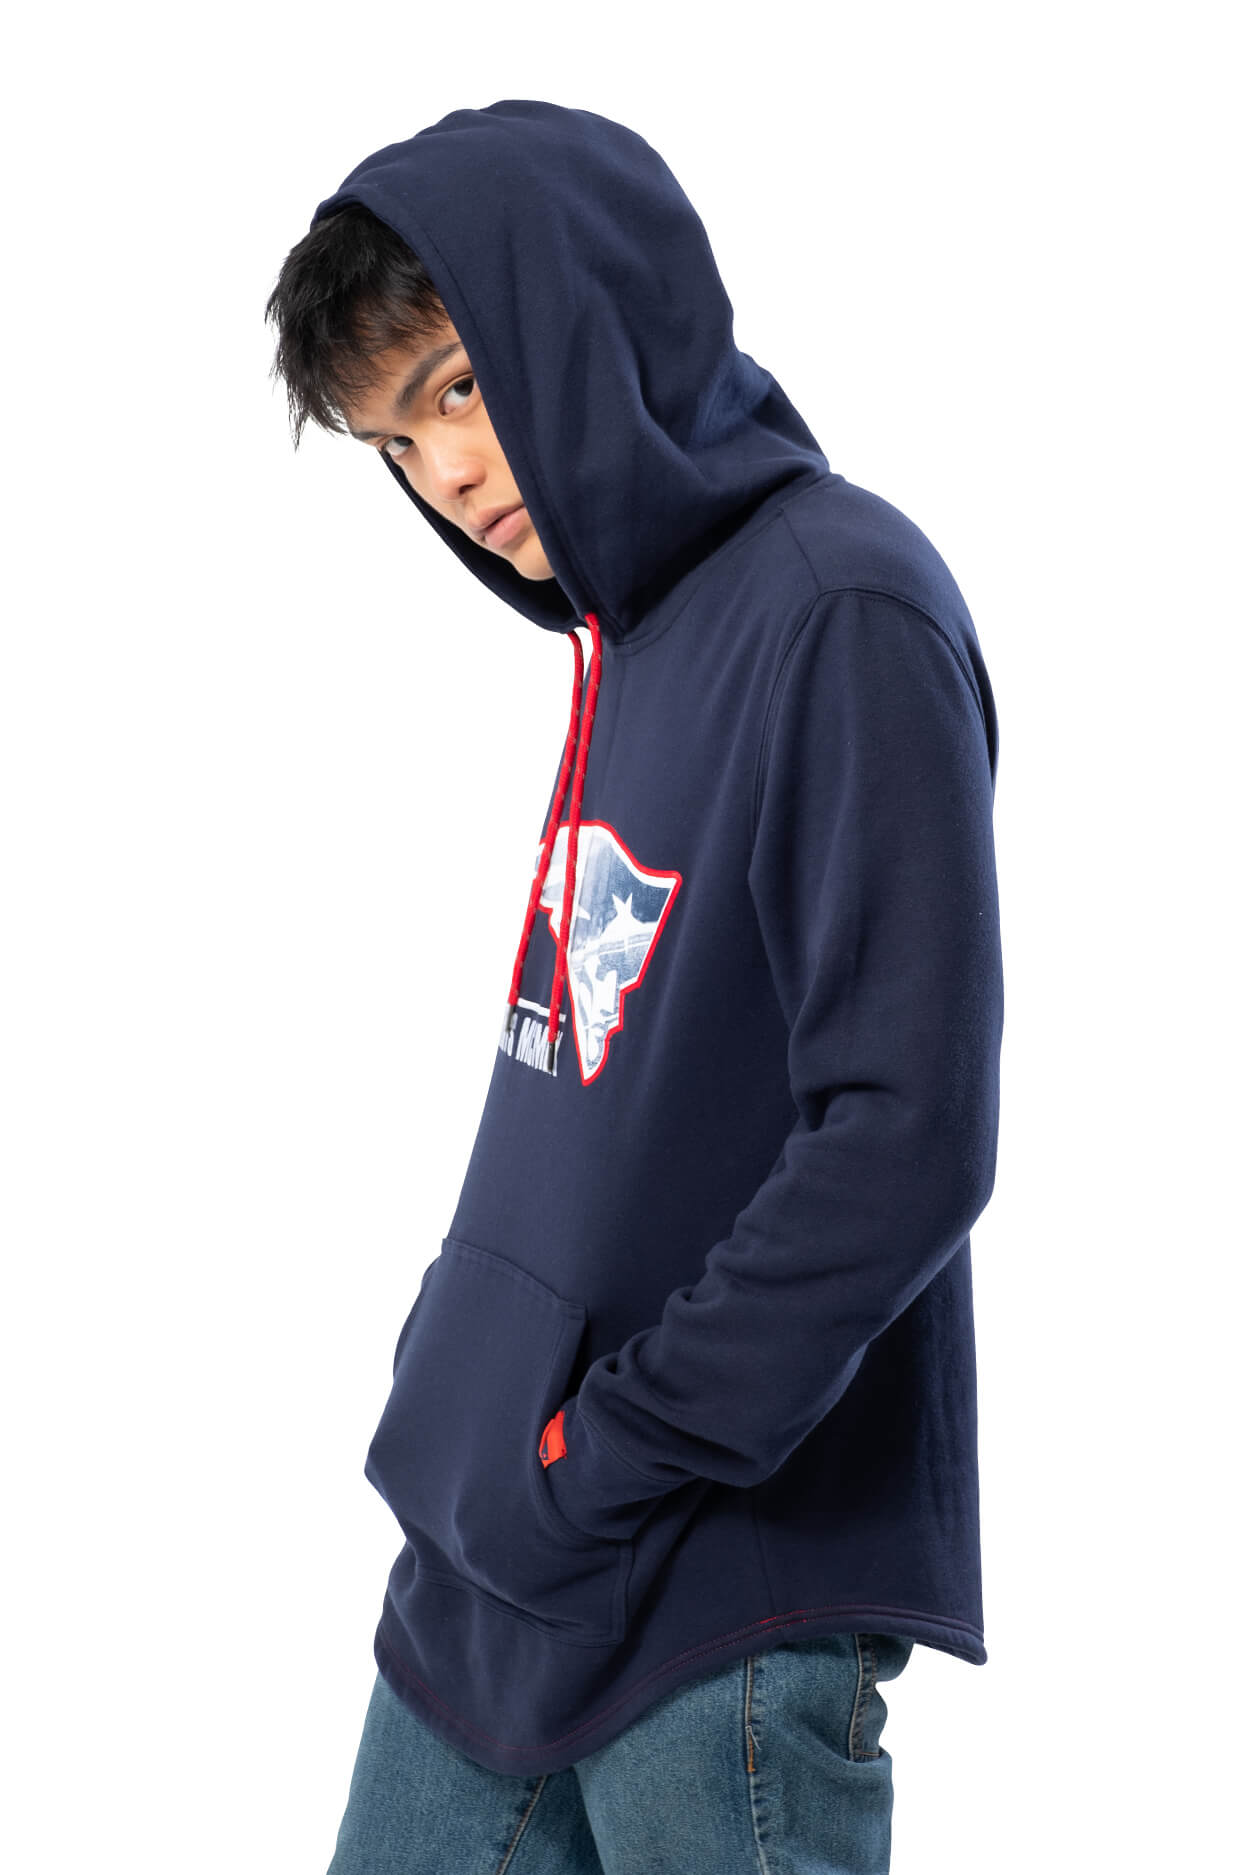 NFL New England Patriots Men's Embroidered Hoodie|New England Patriots